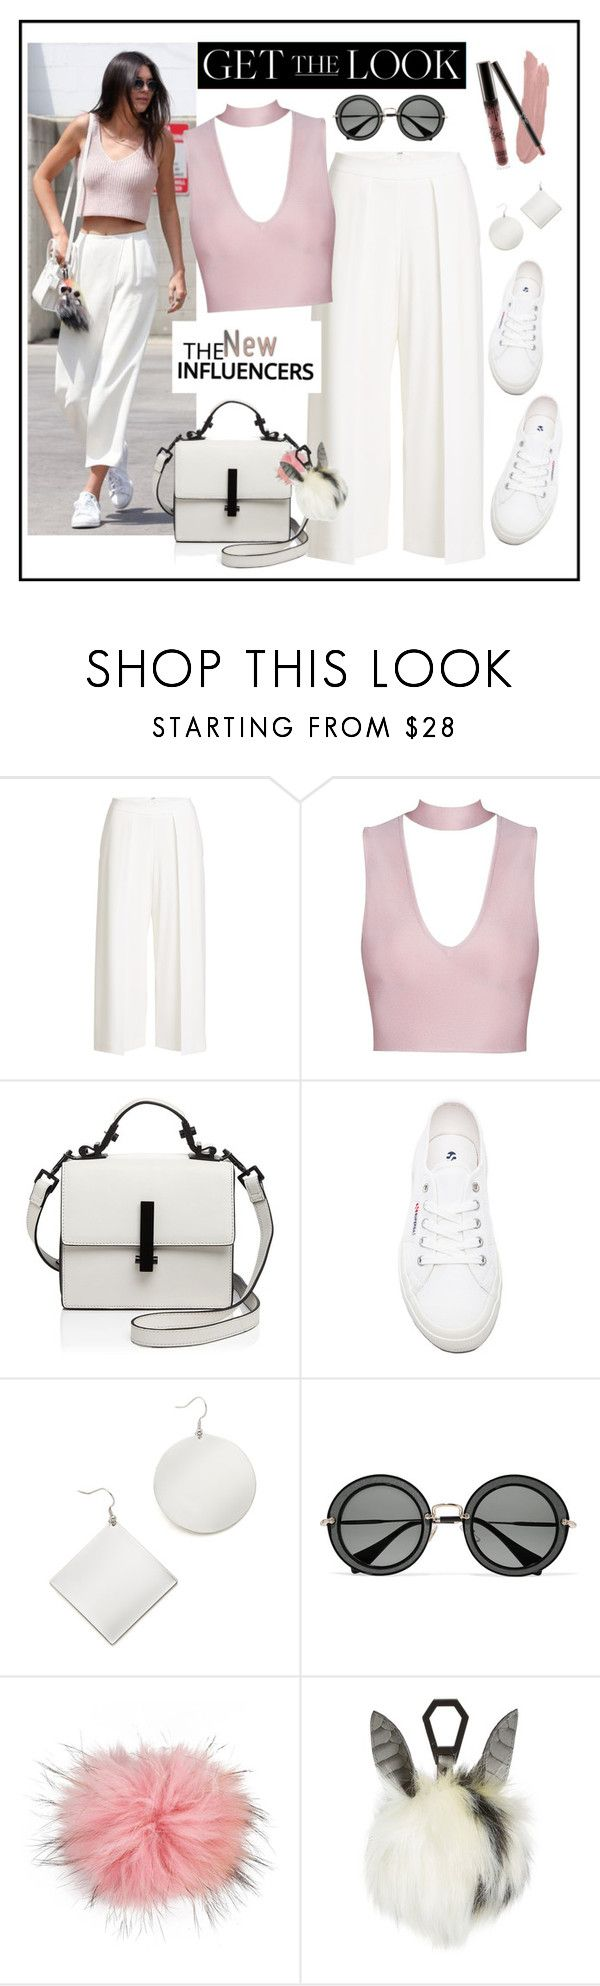 """""""Get The Look!"""" by diane1234 ❤ liked on Polyvore featuring rag & bone, Kendall + Kylie, Superga, Kenneth Jay Lane, Miu Miu, Bobbl, white, Pink, sneakers and influencer"""